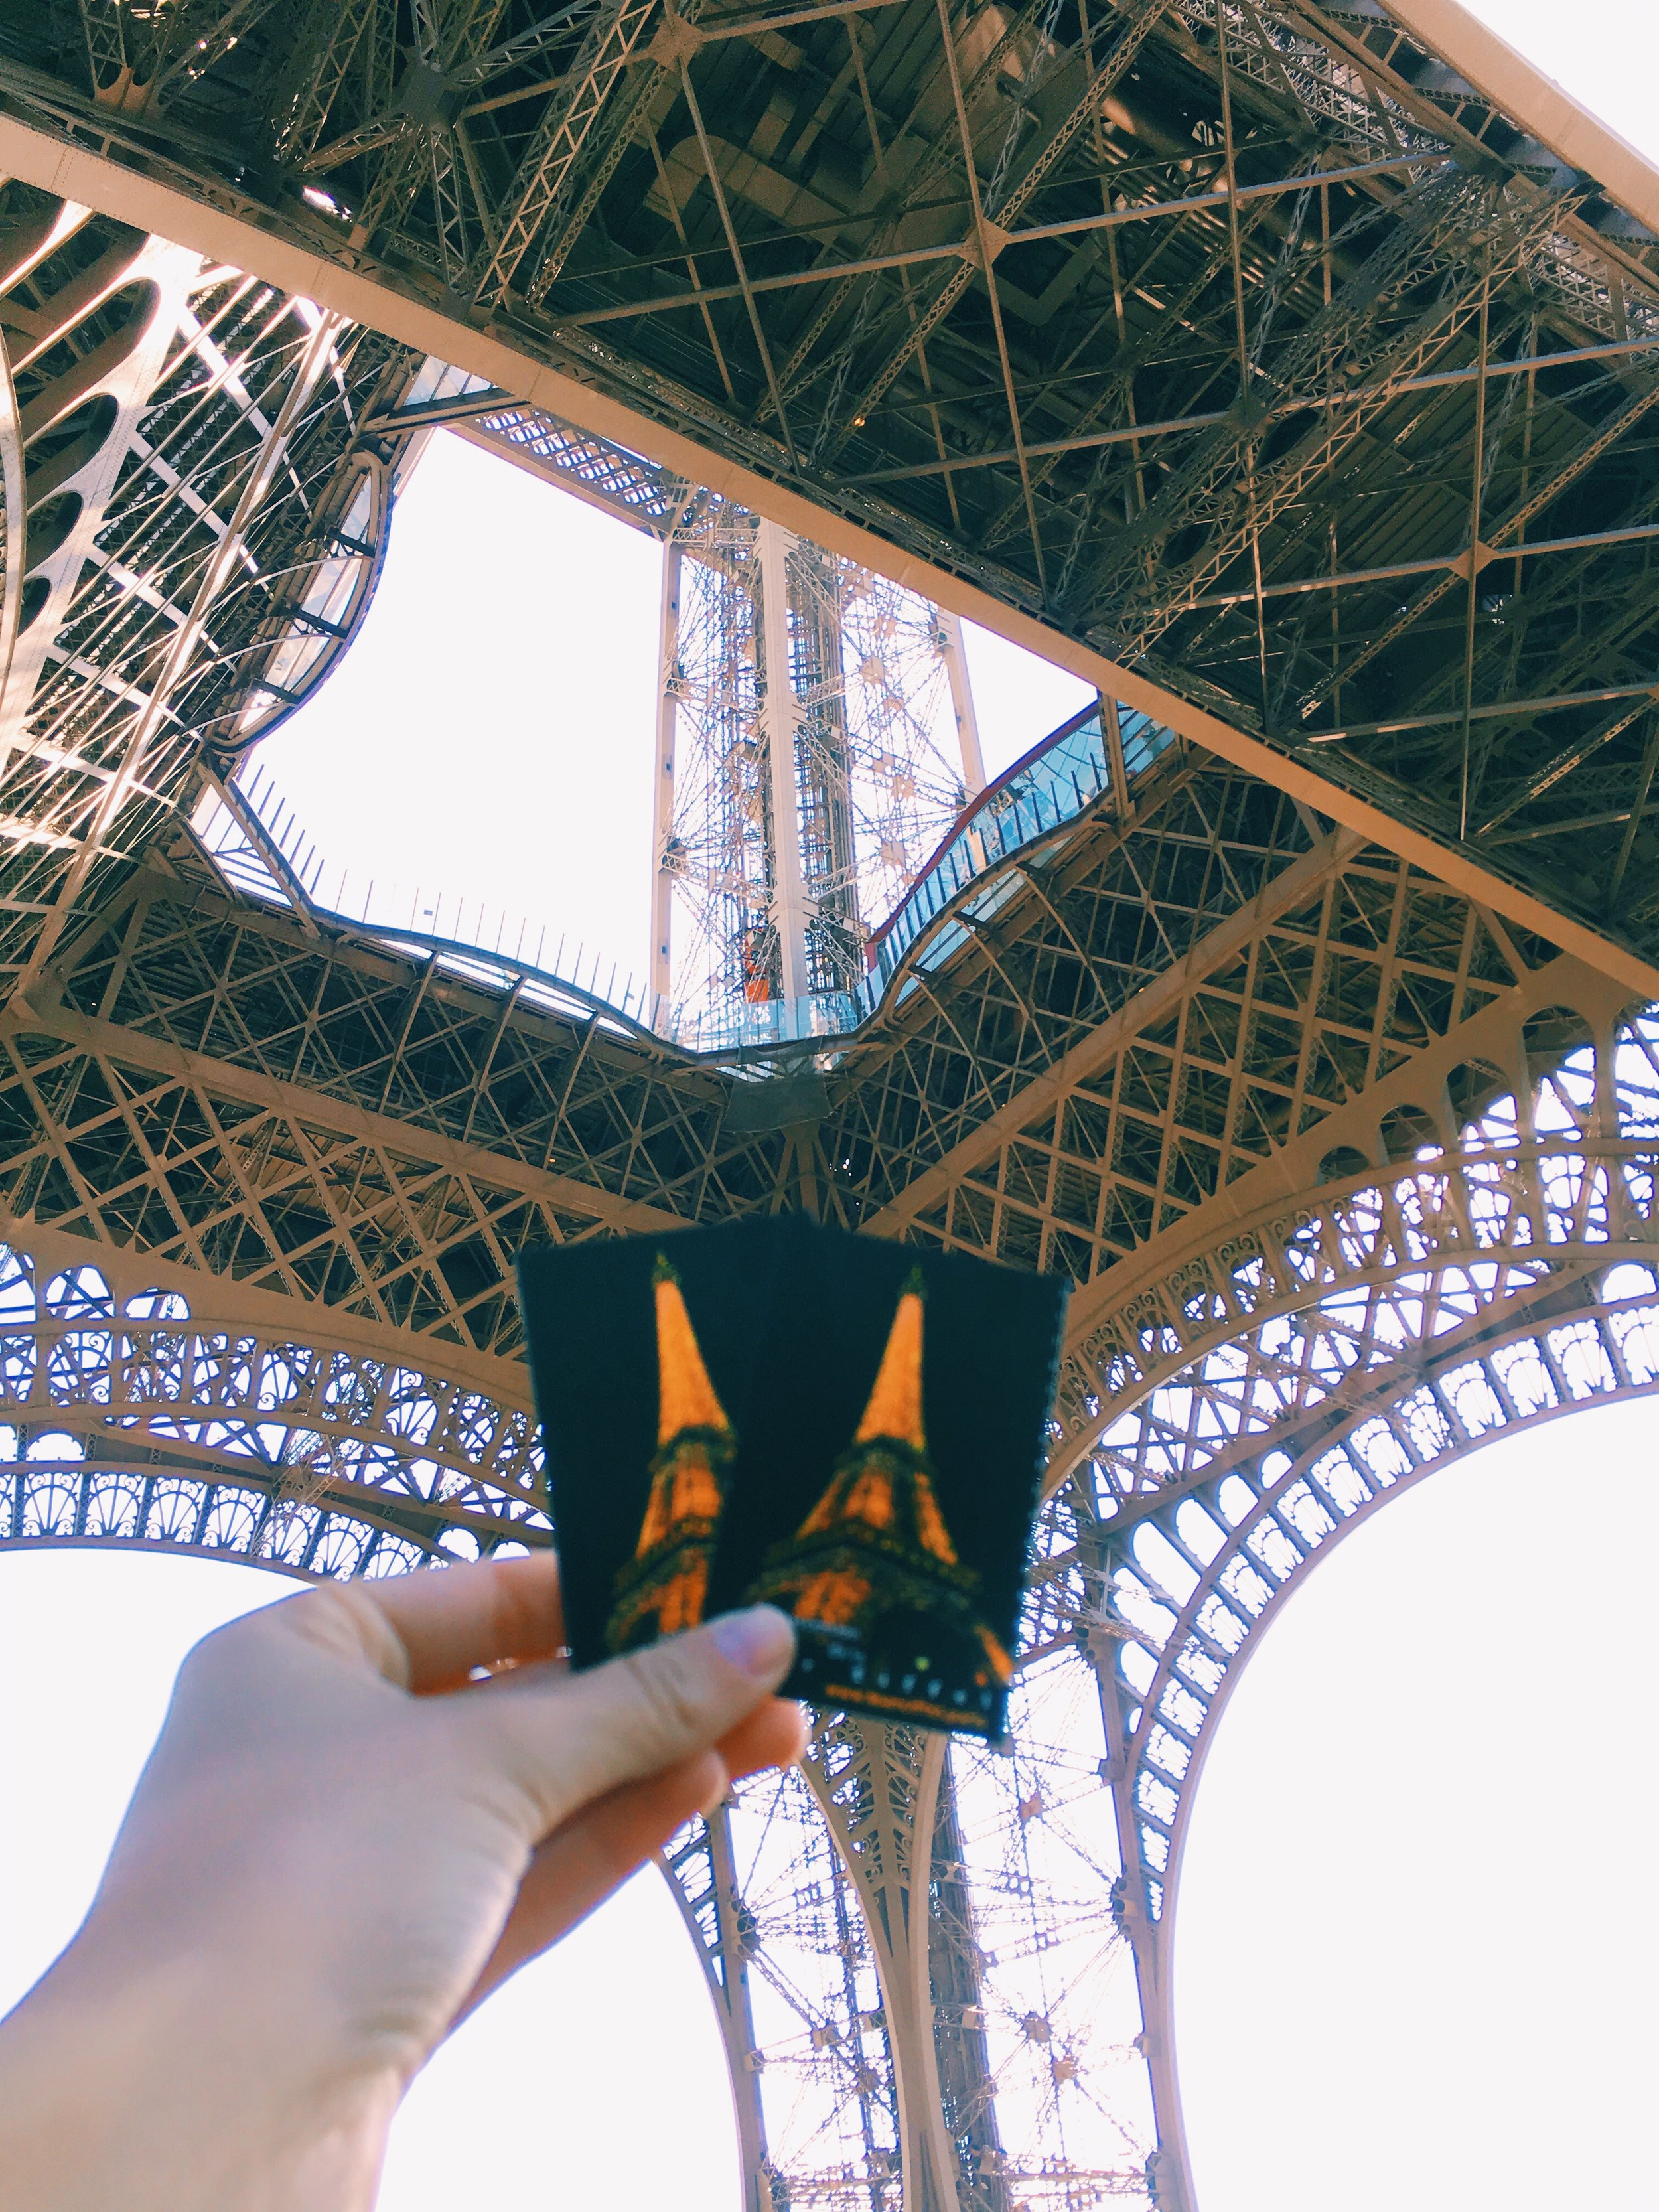 tour eiffel tickets and photo